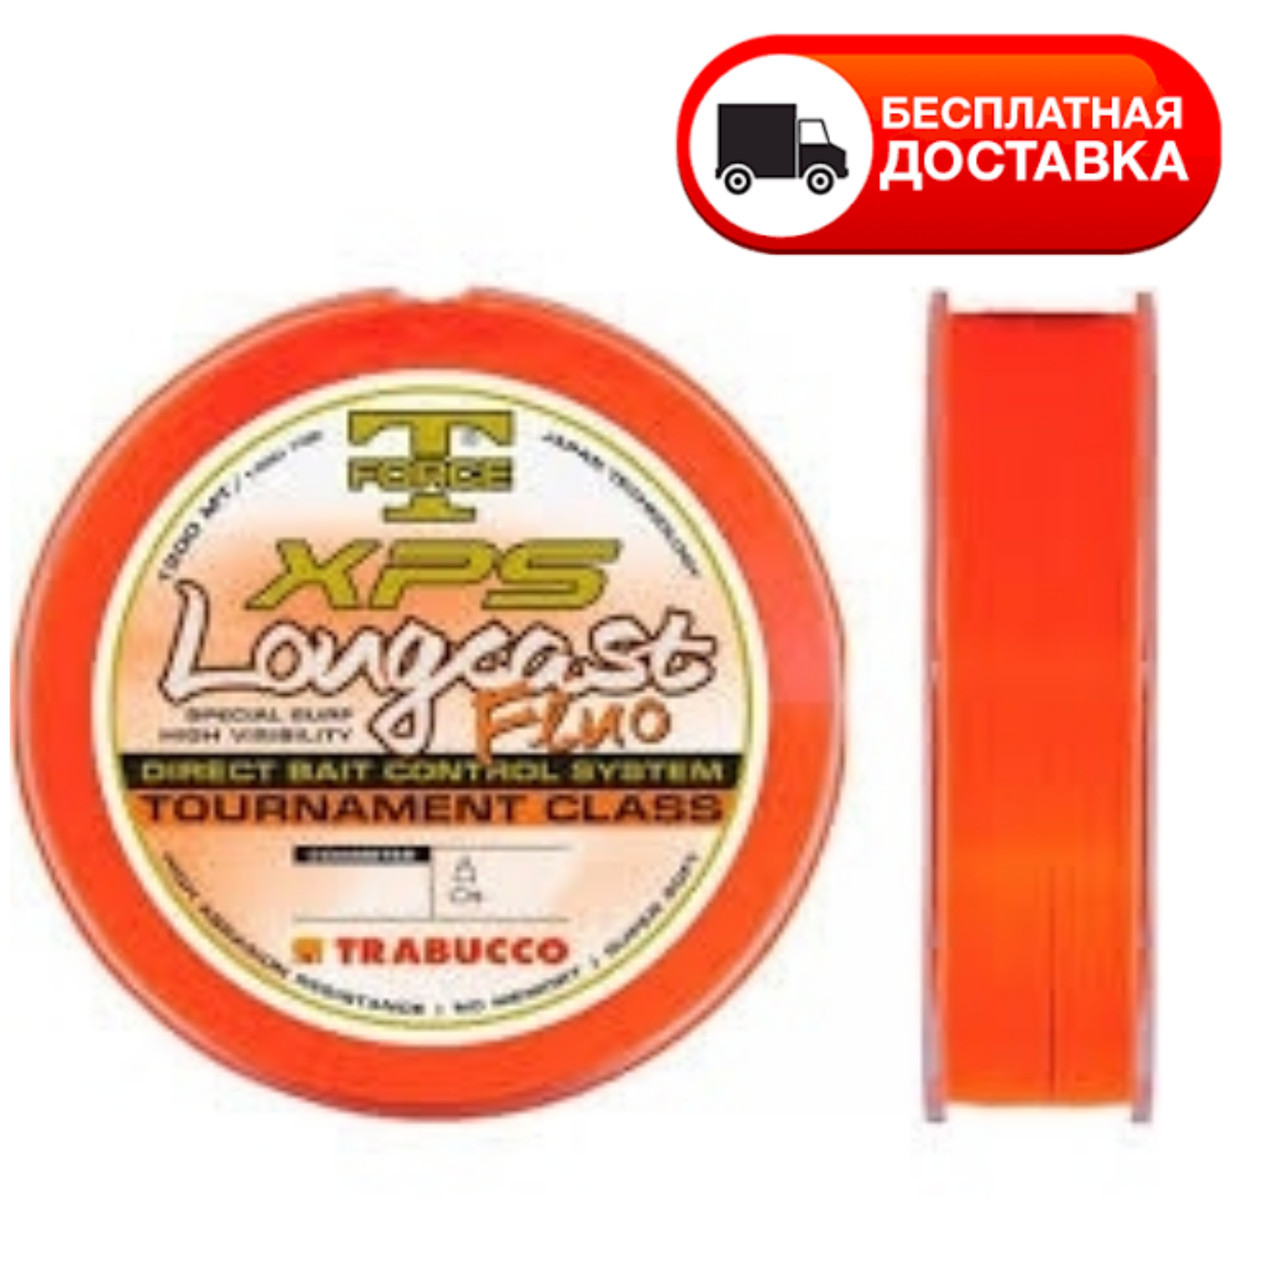 Леска Trabucco TF XPS Long Cast Fluo 1200 м Оранжевая 0,203 мм 5,42 кг/11,95 lb